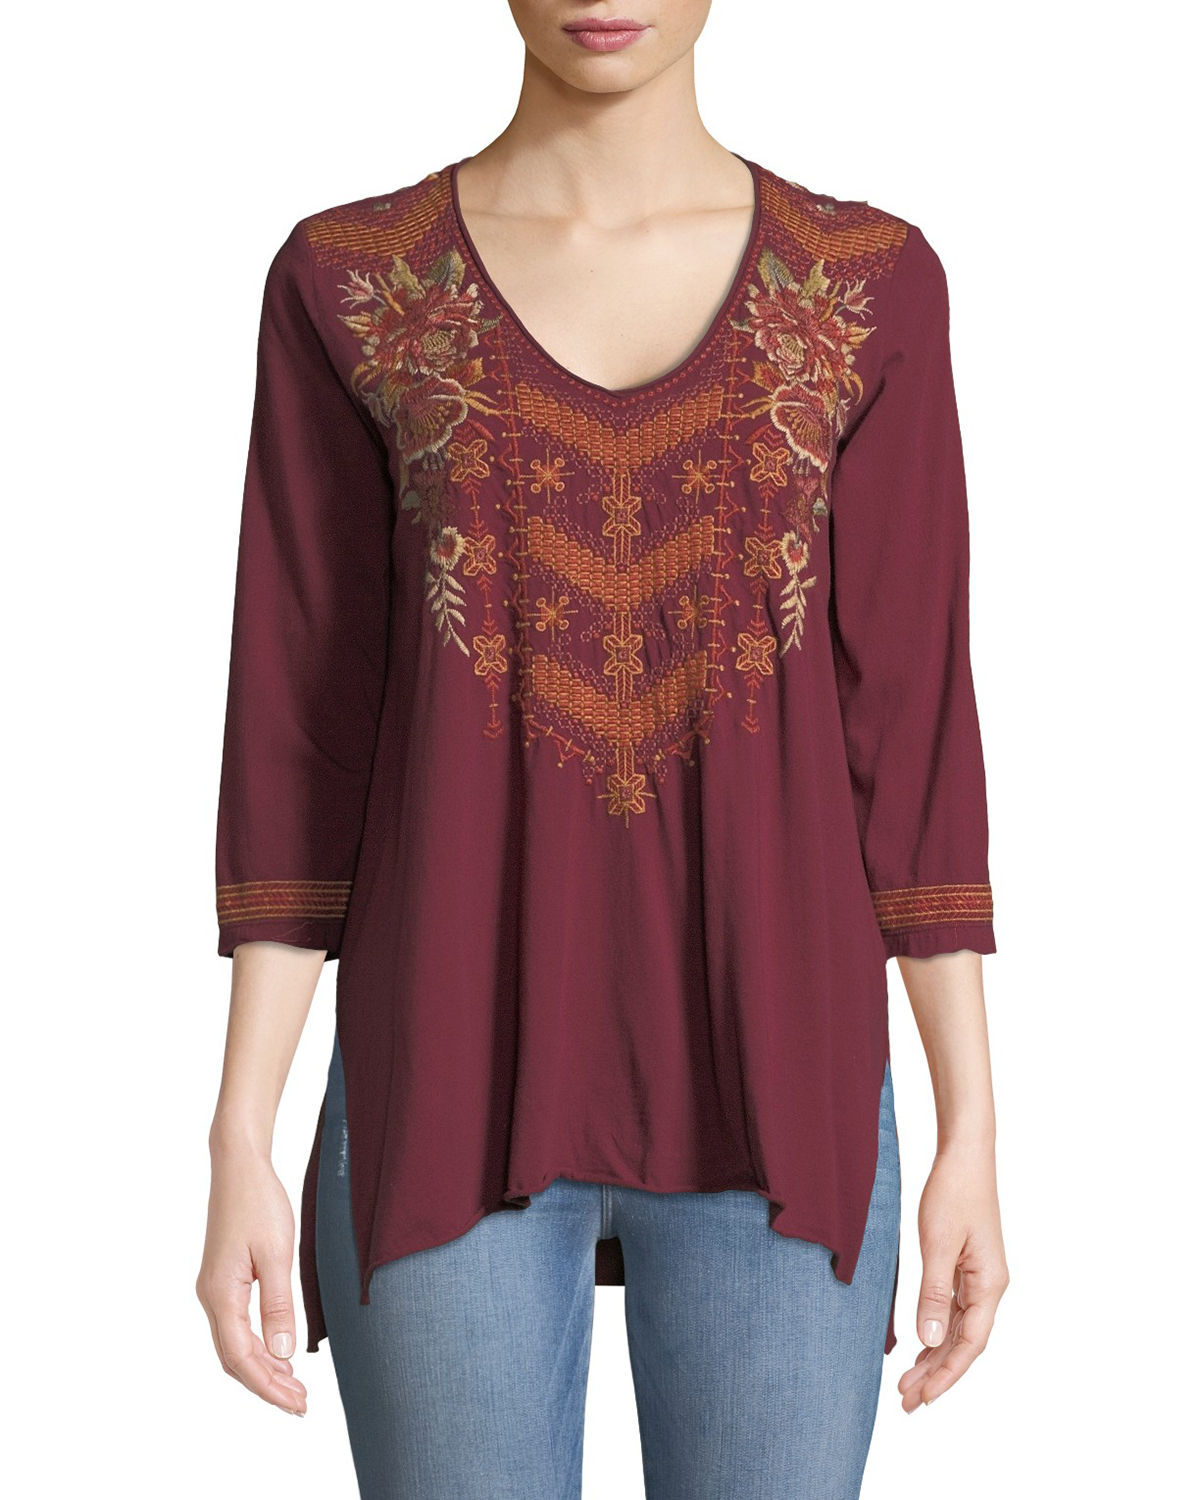 Ellim 3/4-Sleeve Embroidered Drape Knit Top